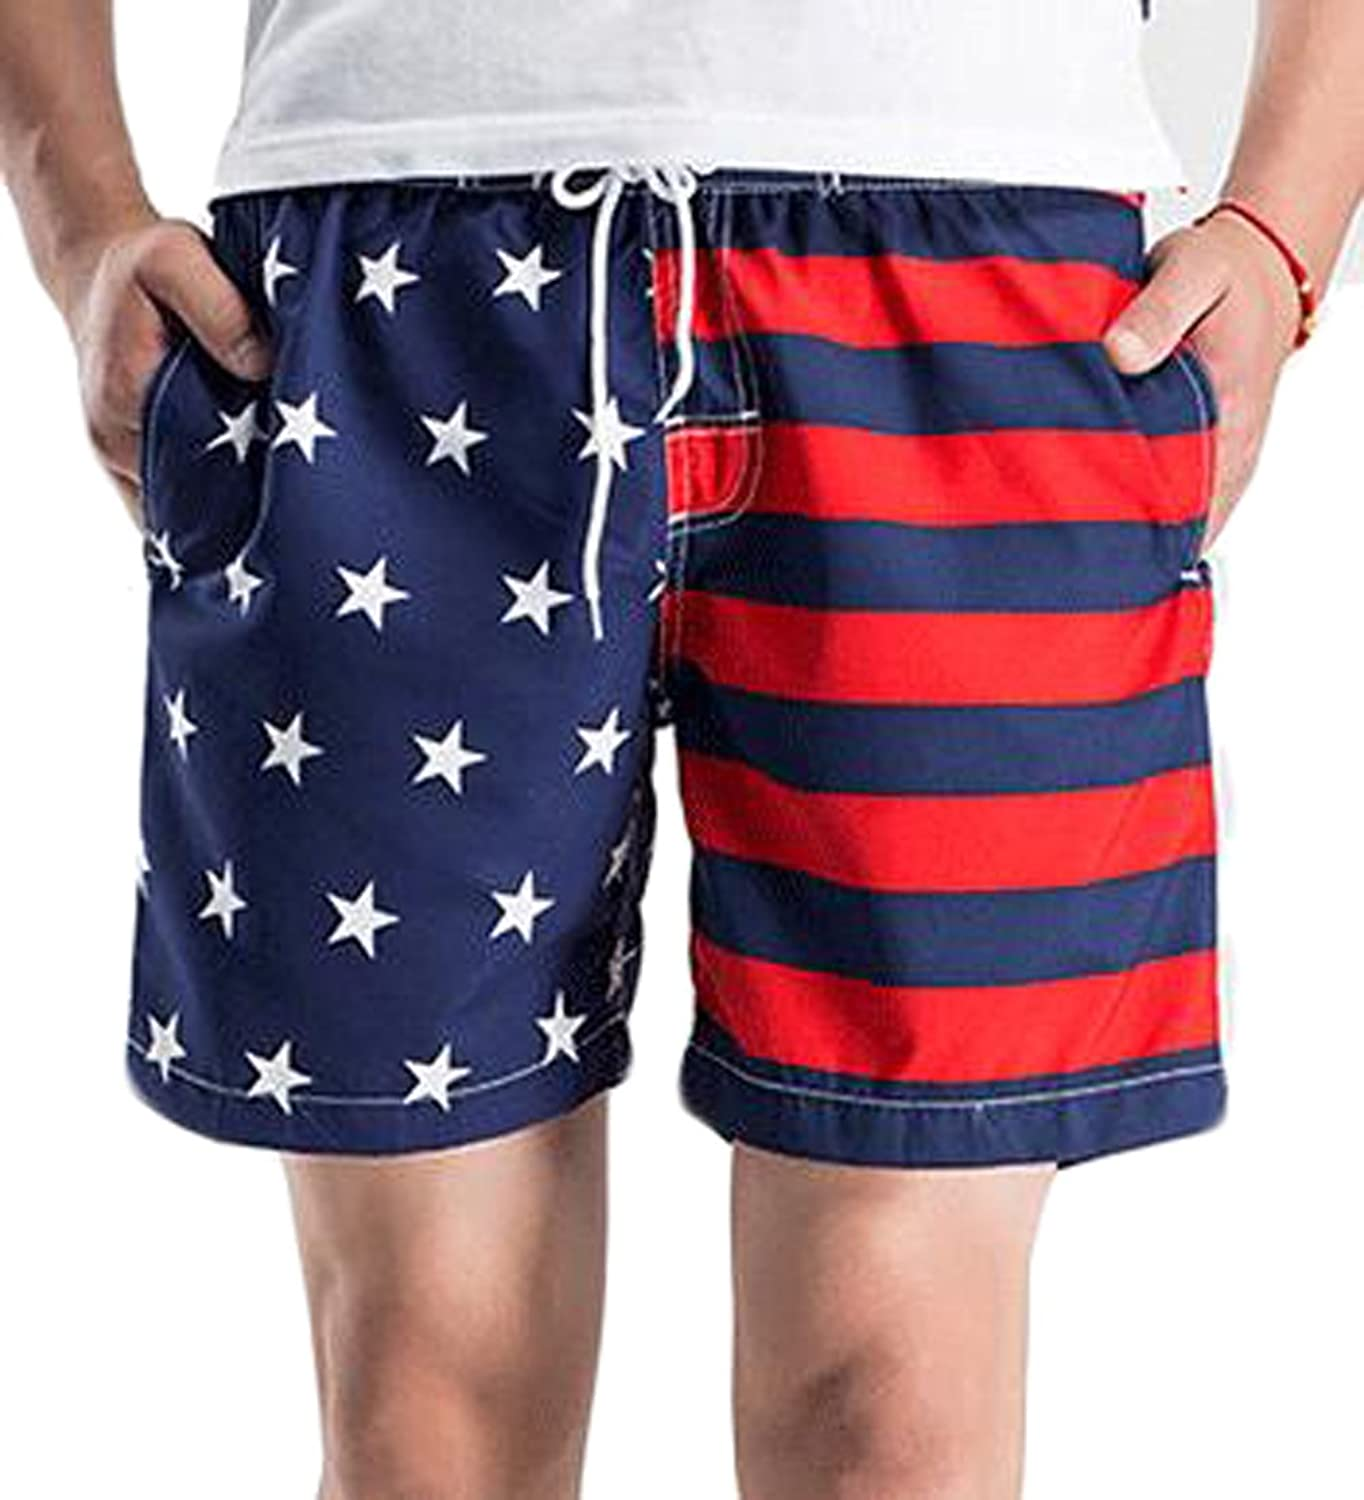 Feewearior Mens Beach Shorts Army Camouflage Military Swimming Trunks Board Pants Extended